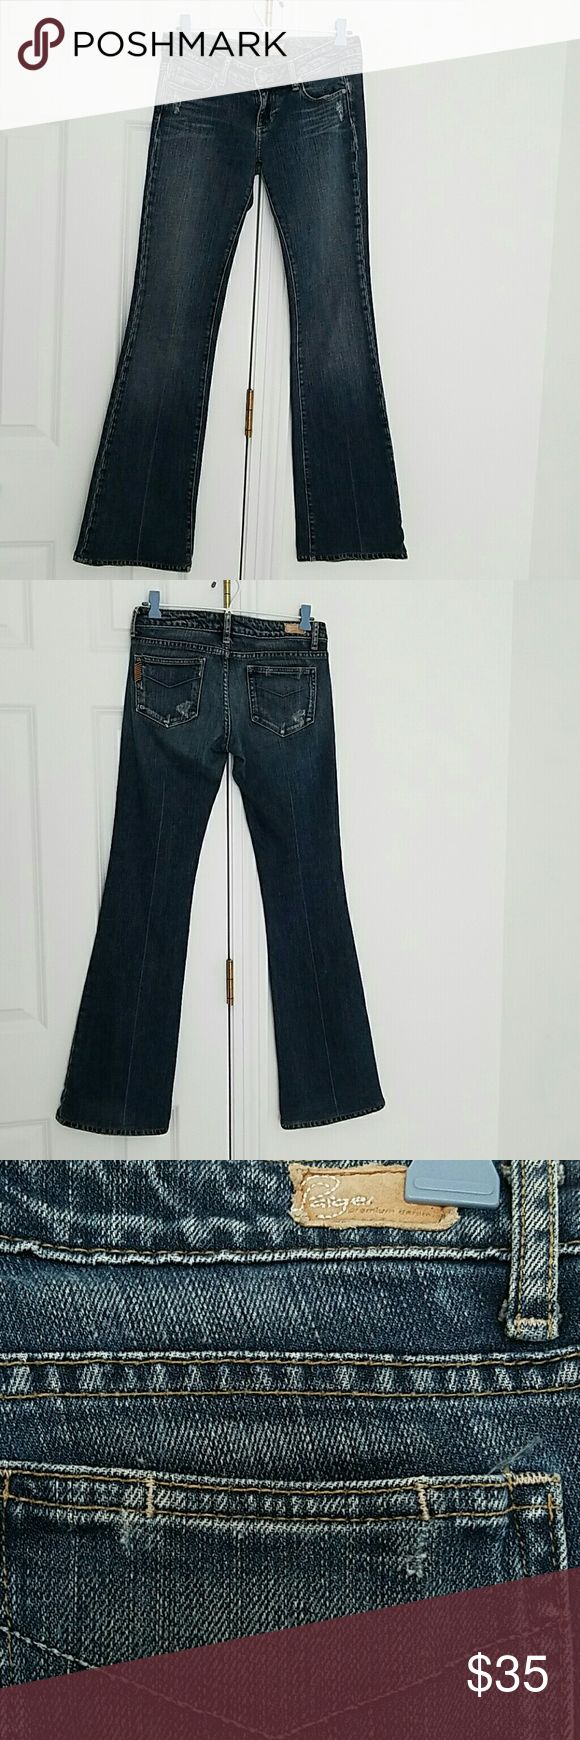 "SALE Paige Jeans Laurel Canyon size 26 Paige Jeans size 26.  30""inseam.good overall condition. Original hem.bootcut. Paige Jeans Jeans"